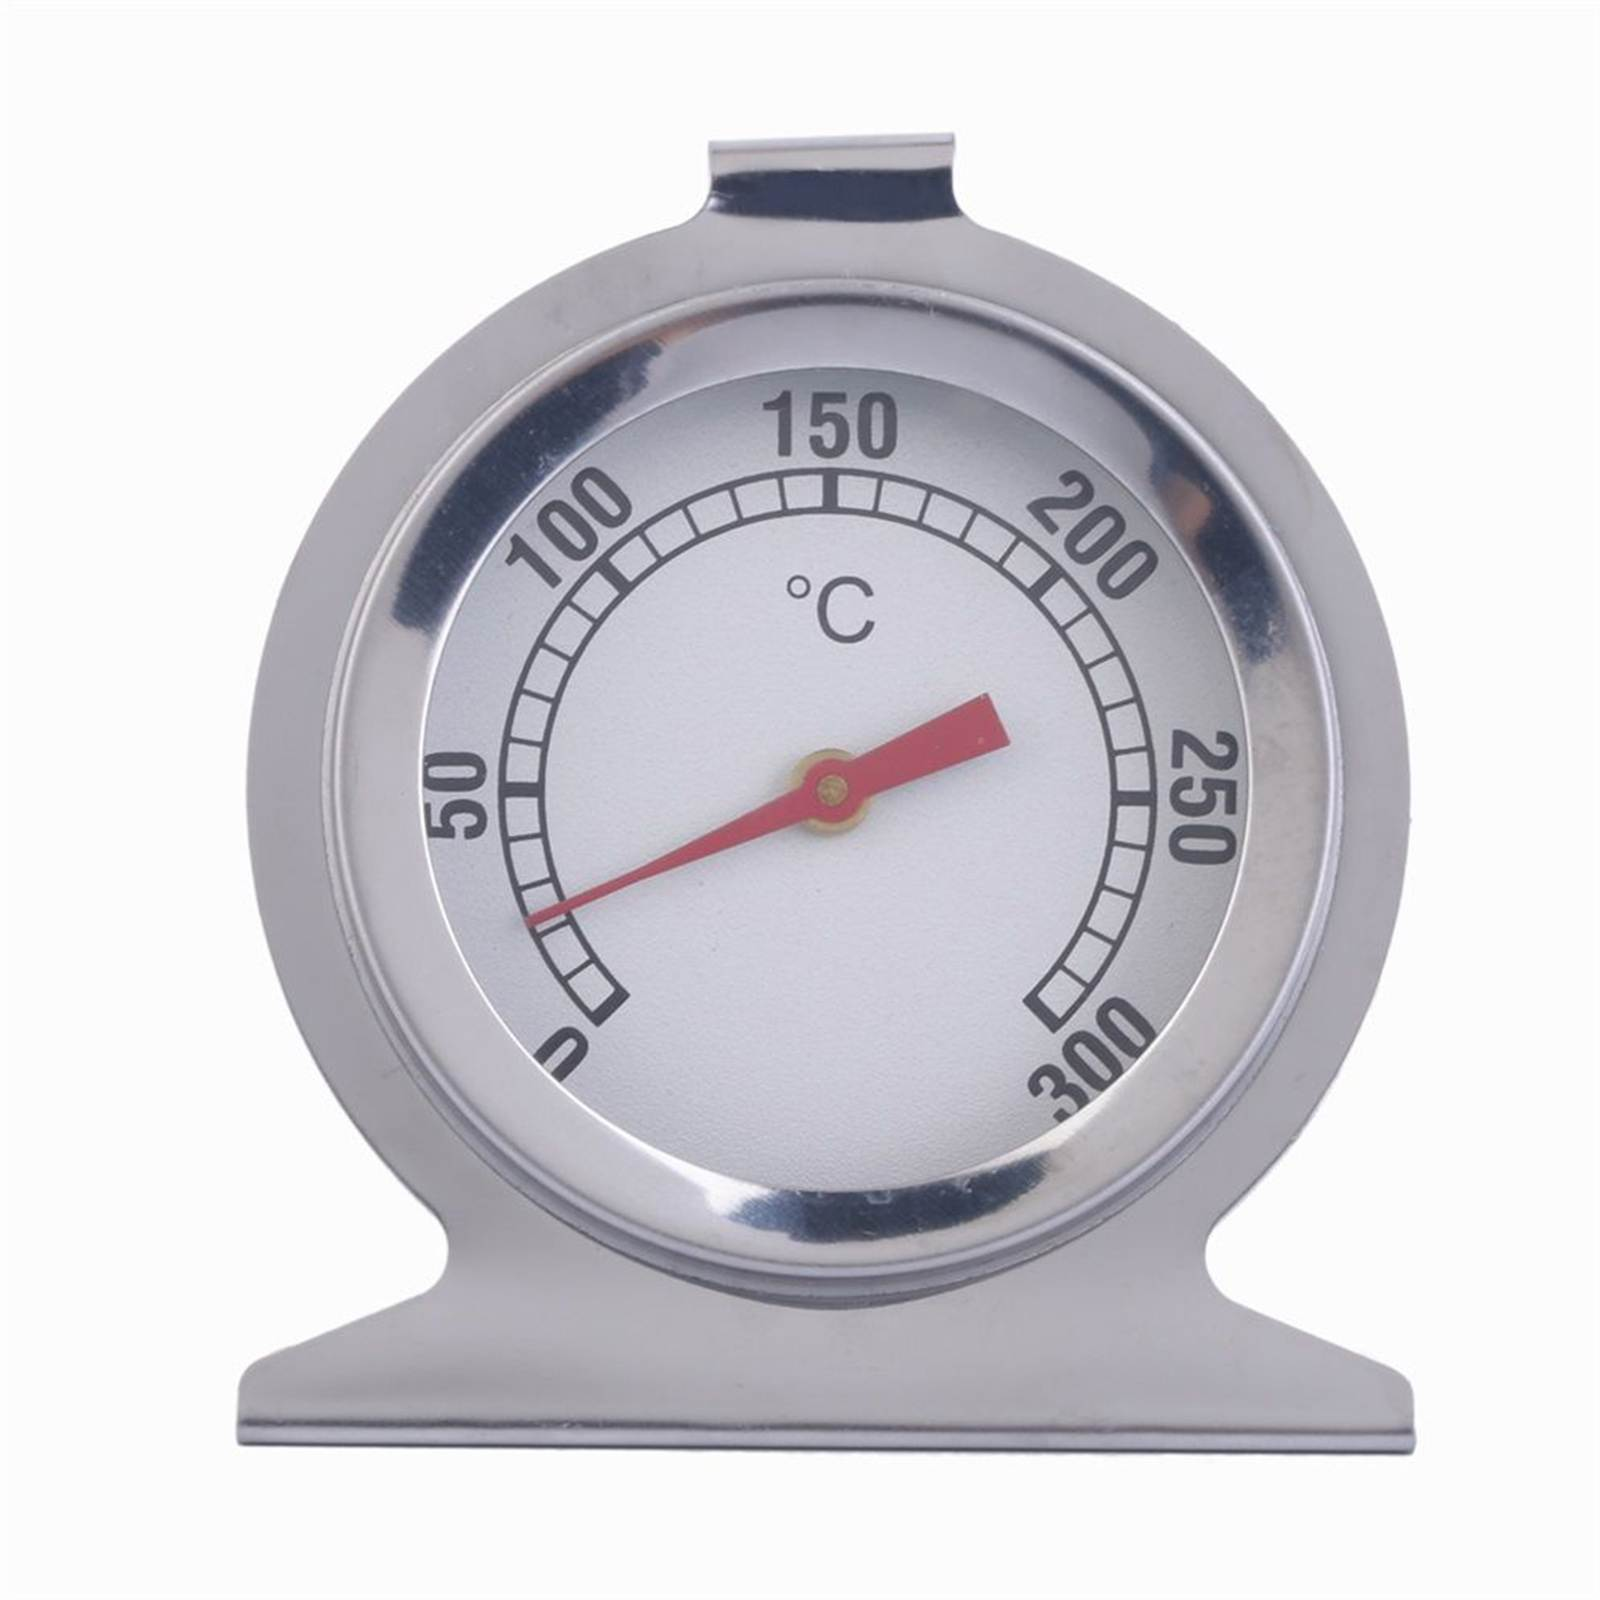 Jeobest Stainless Steel Oven Thermometer Kitchen Cooking Meat Tool 300�C MZ by